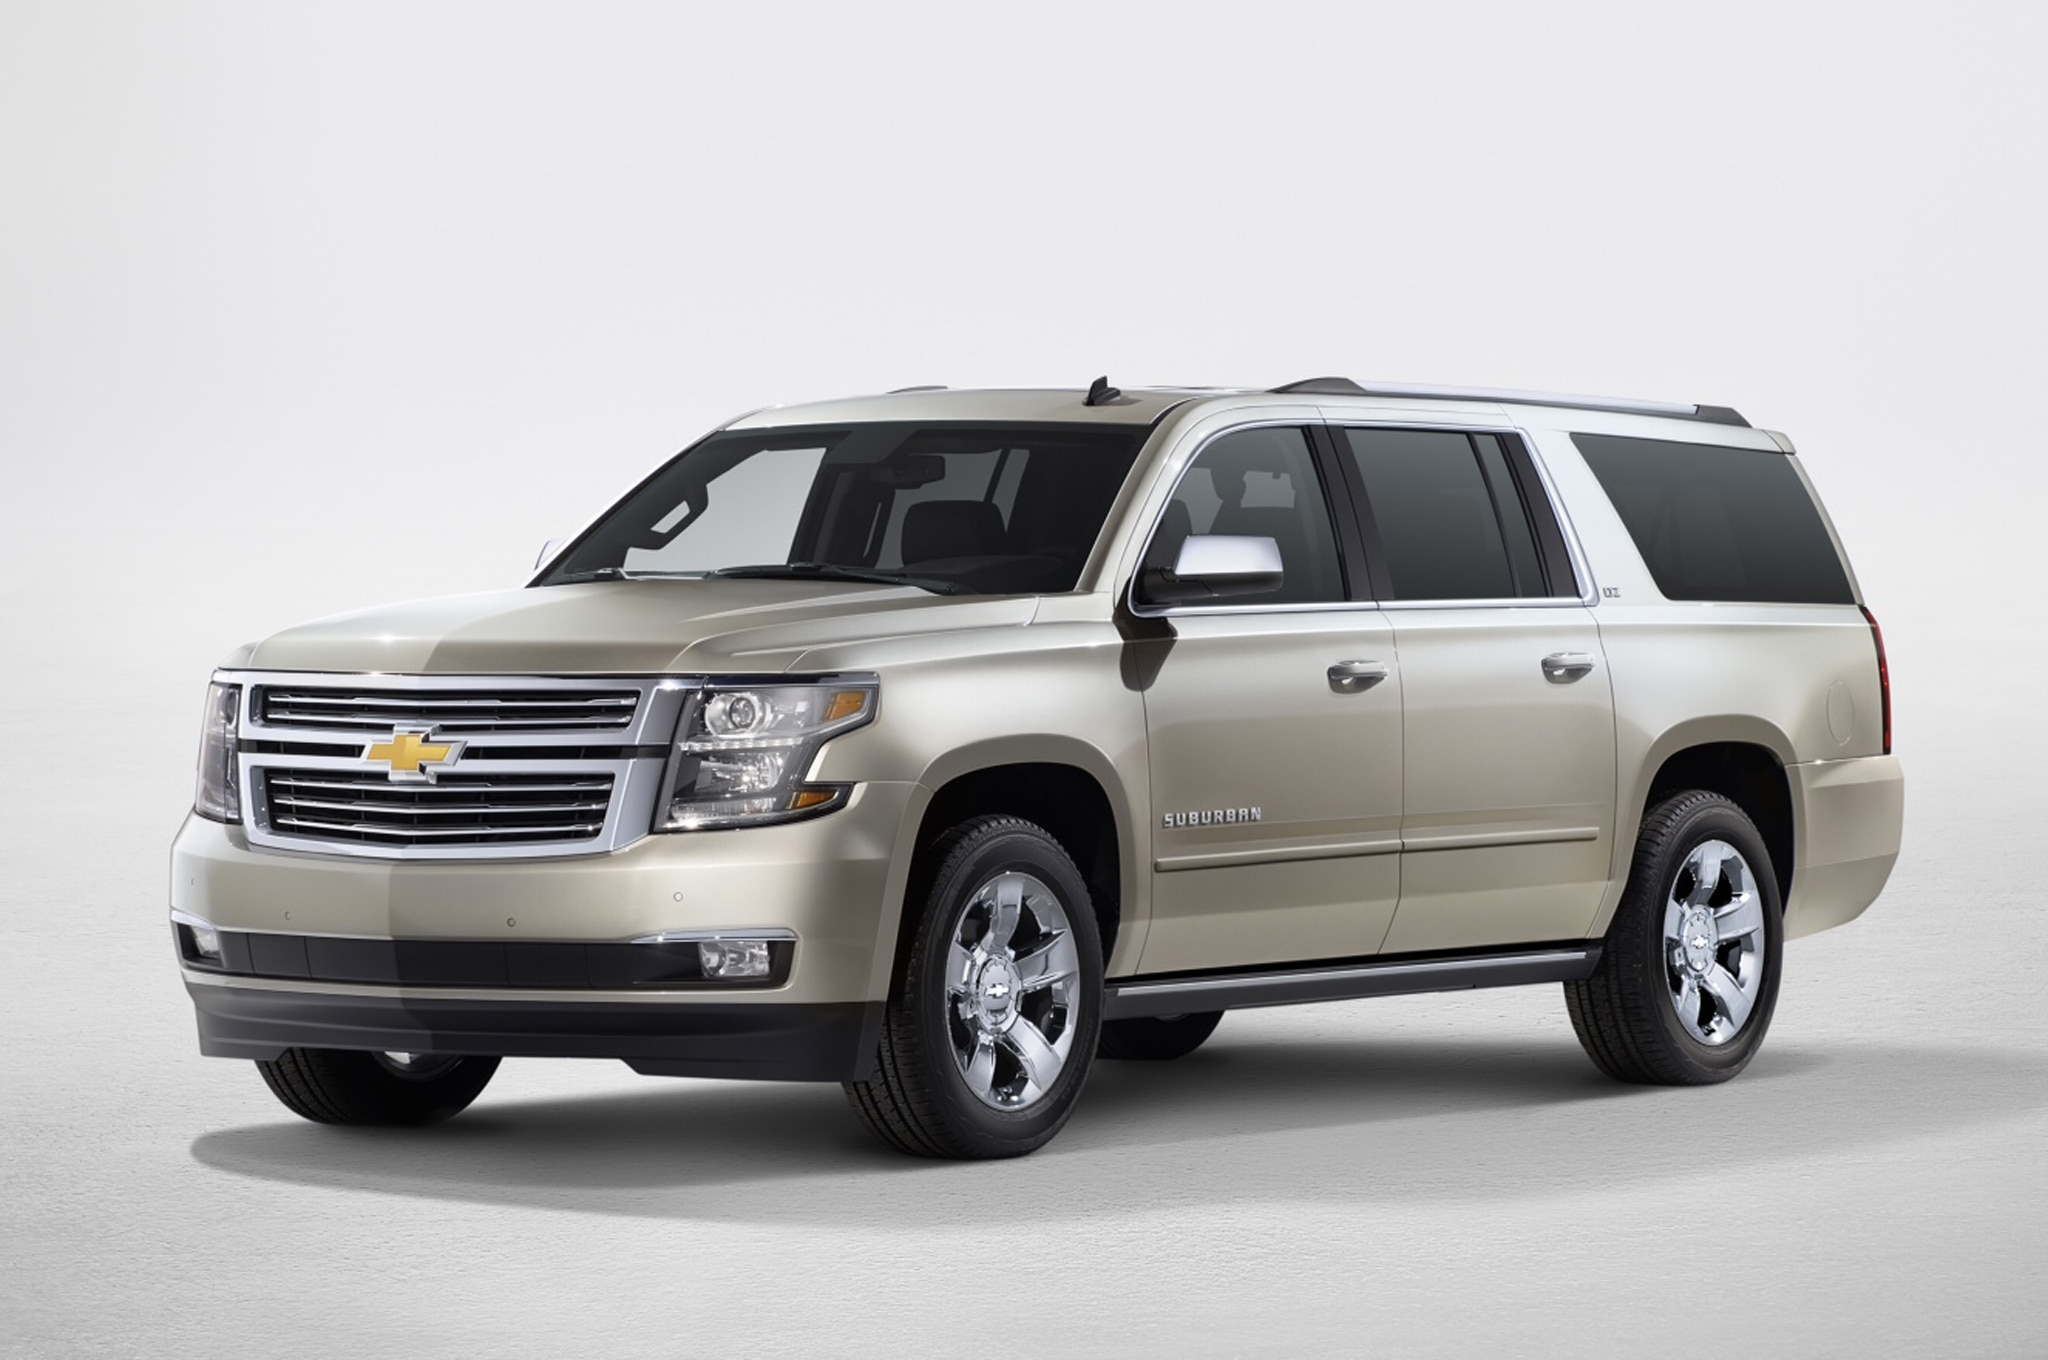 2015 Chevrolet Suburban Front View1